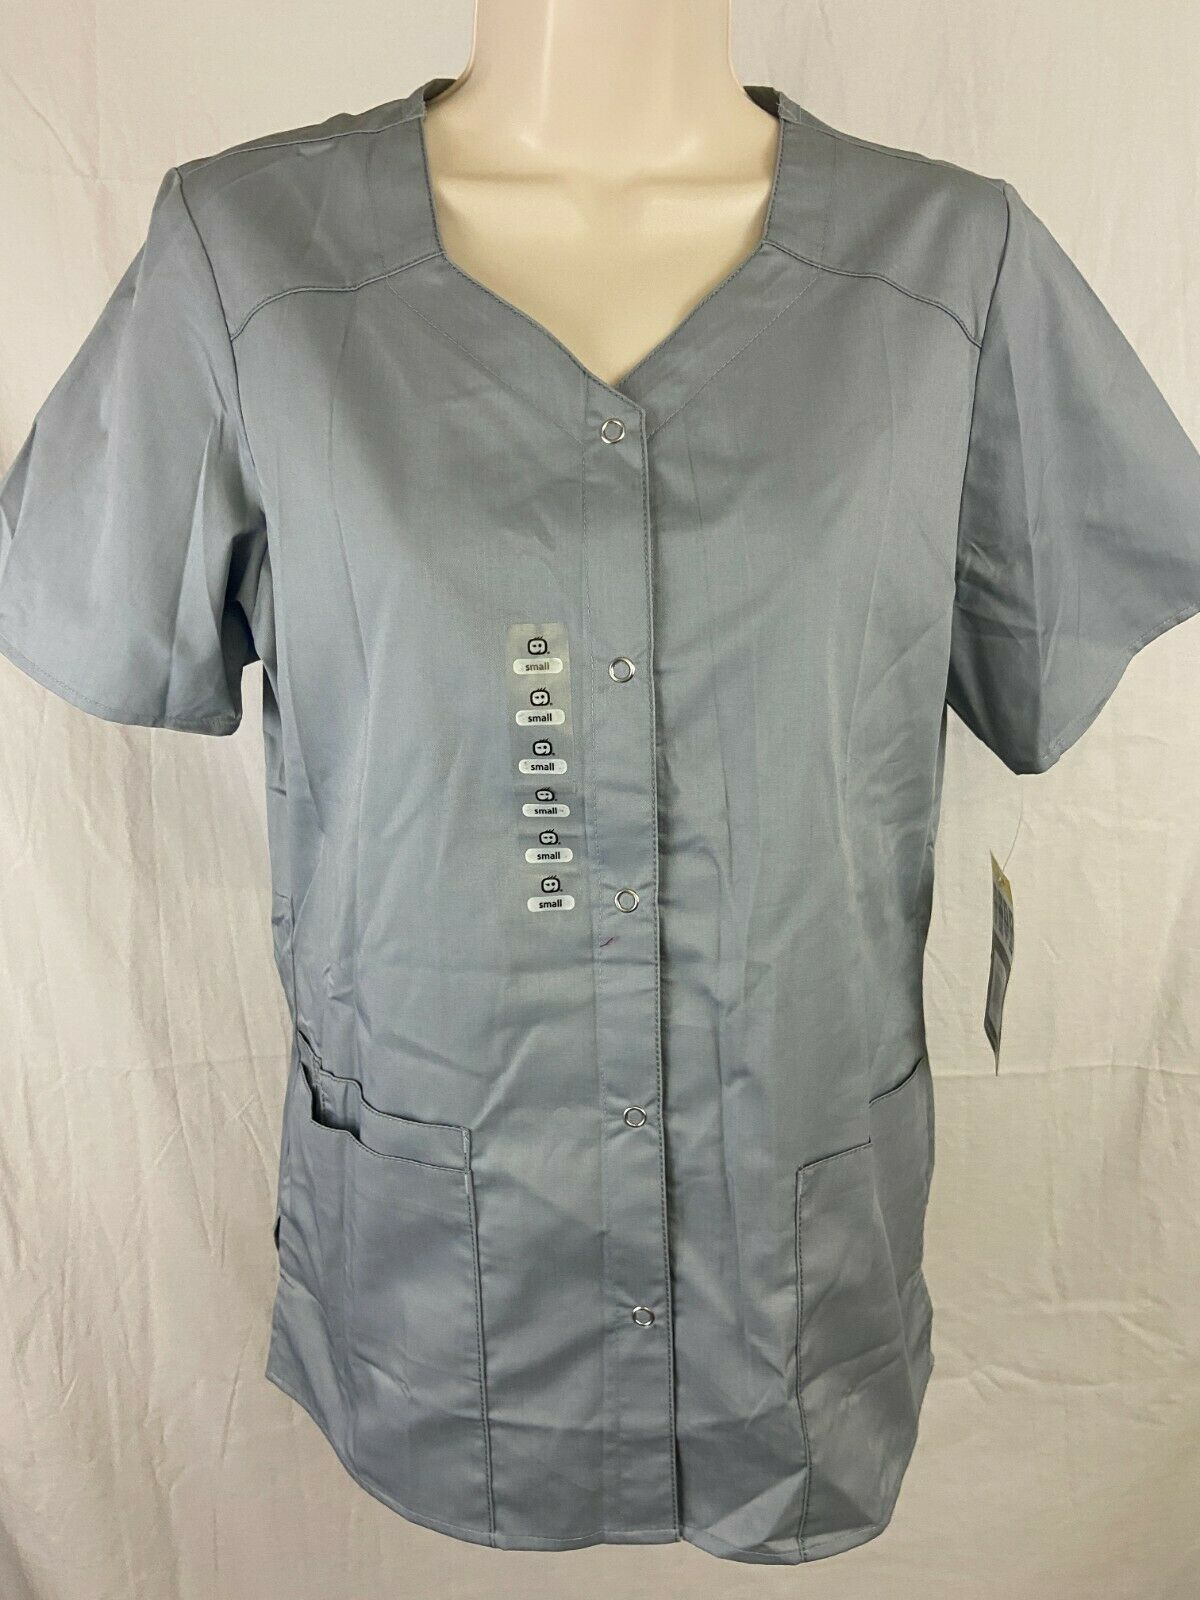 Wonder Wink Scrubs Womens Size Small Short Sleeve Gray New With Tags Full Button - £9.35 GBP